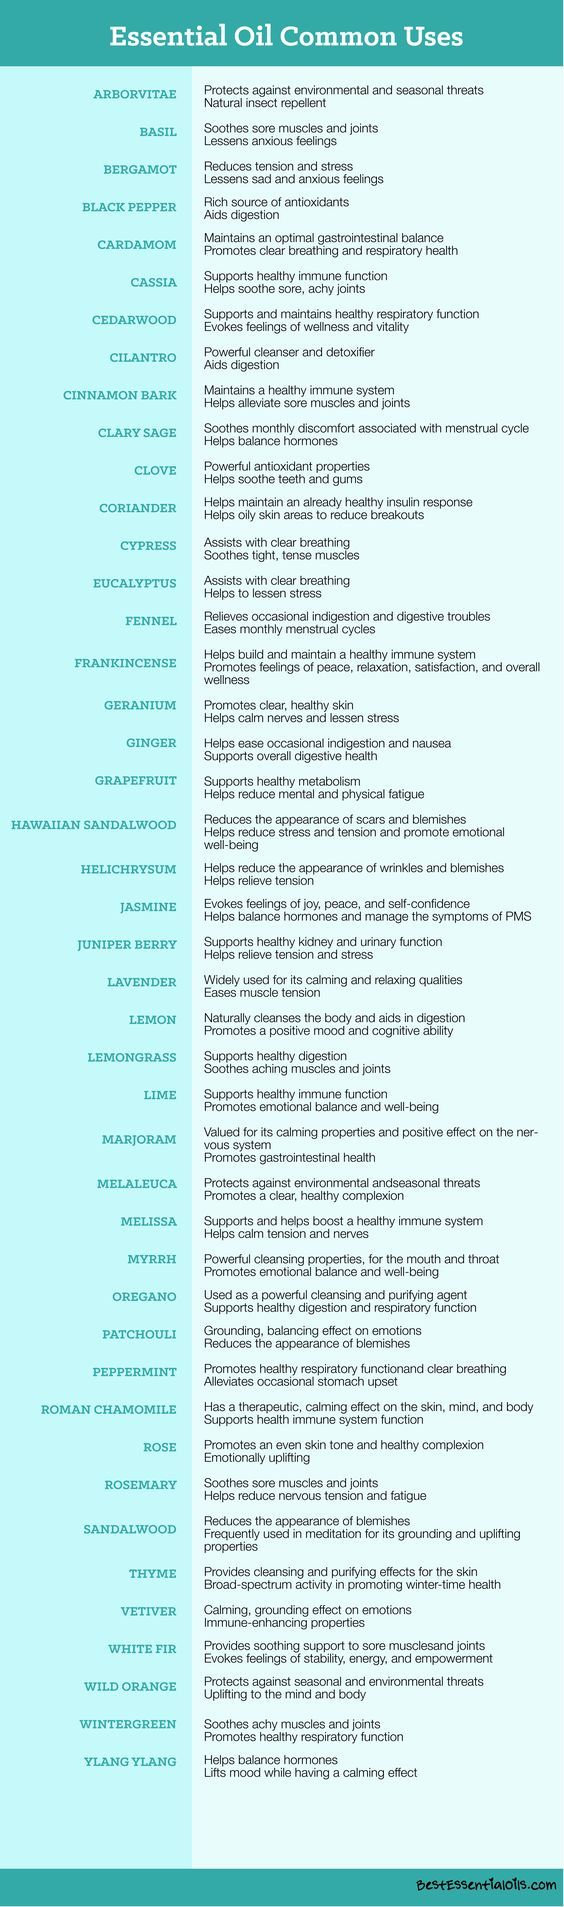 Just starting out with essential oils? Here are seven must-have charts to make you an essential oil expert in no time! Check them out!